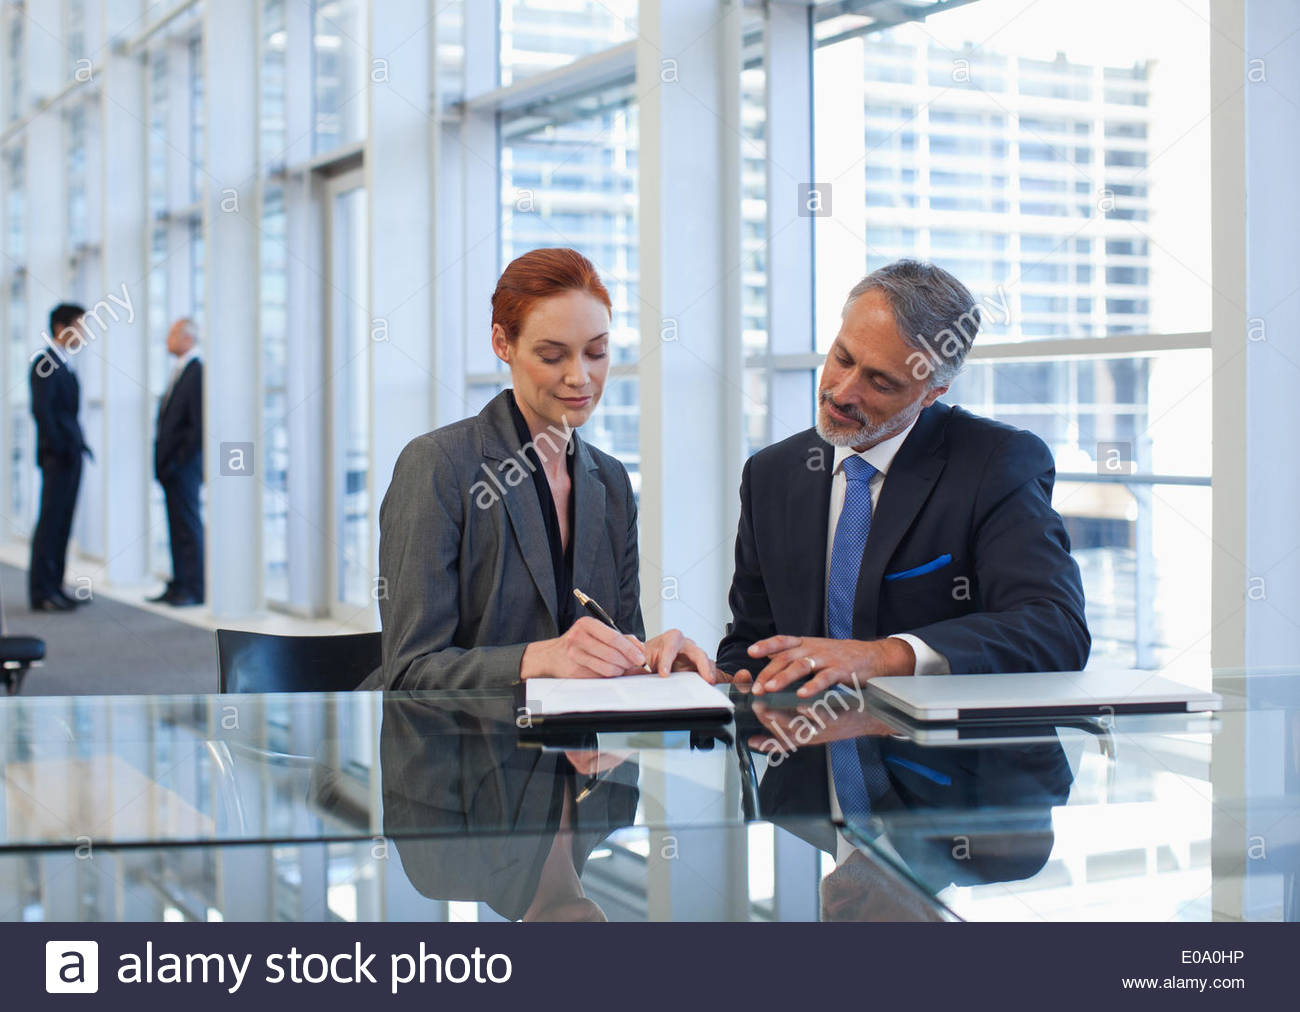 Business people talking in office lobby - Stock Image